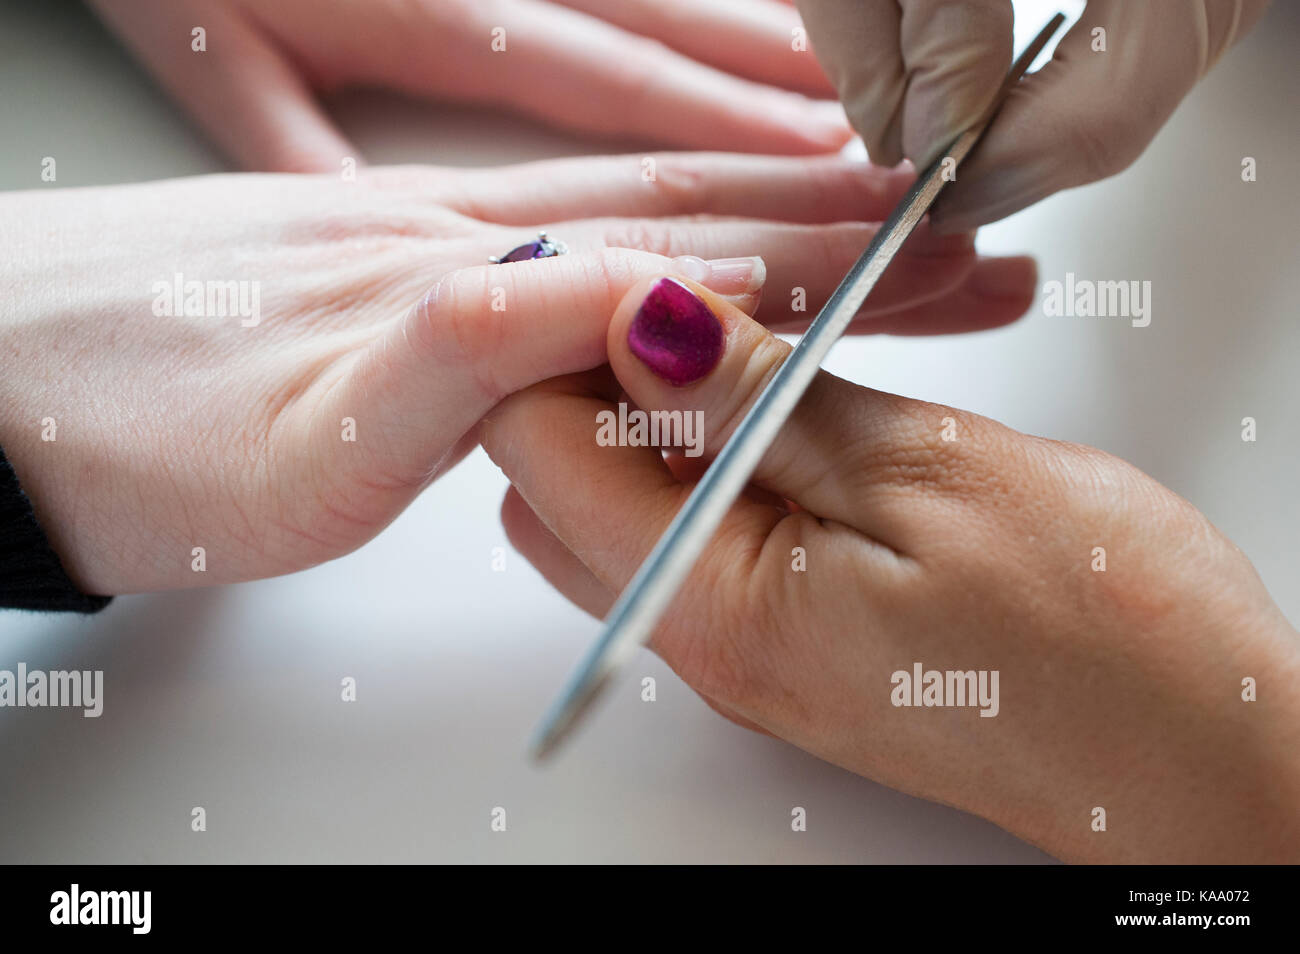 Professional manicurist manicuring clients fingernails in nail salon, close up of hands - Stock Image